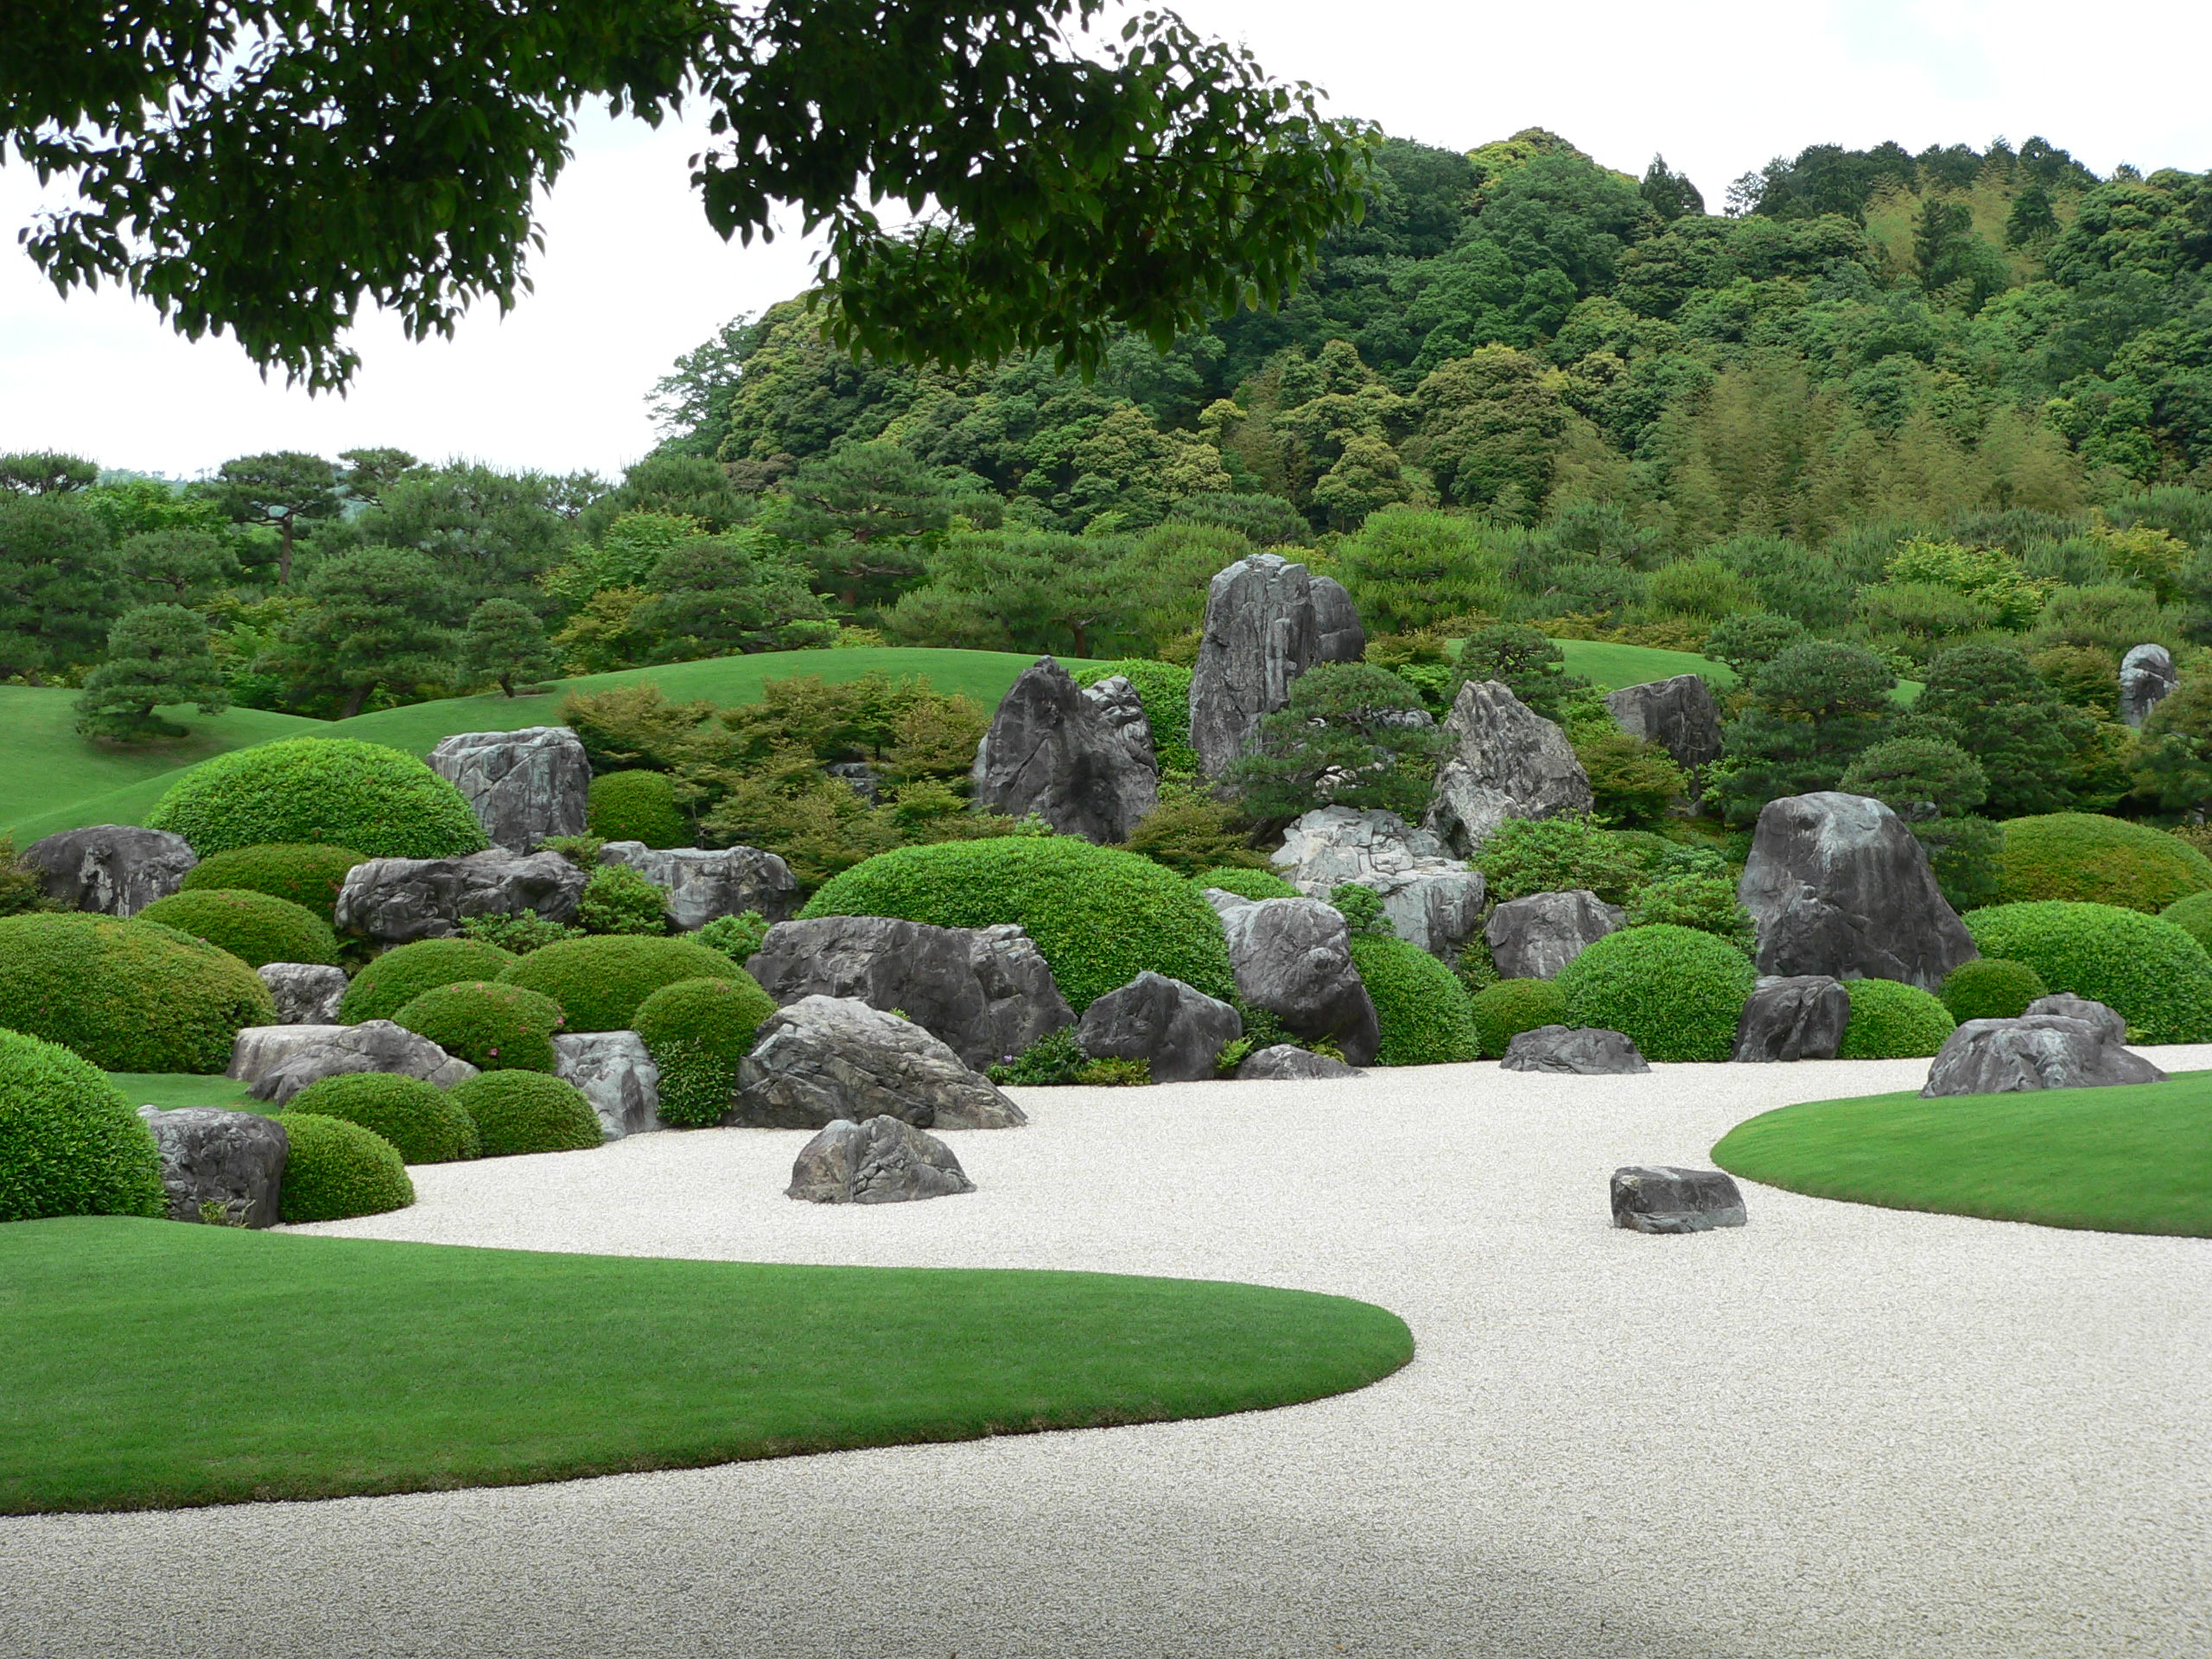 Japanese garden at adachi museum of art in shimane prefecture, japan photo